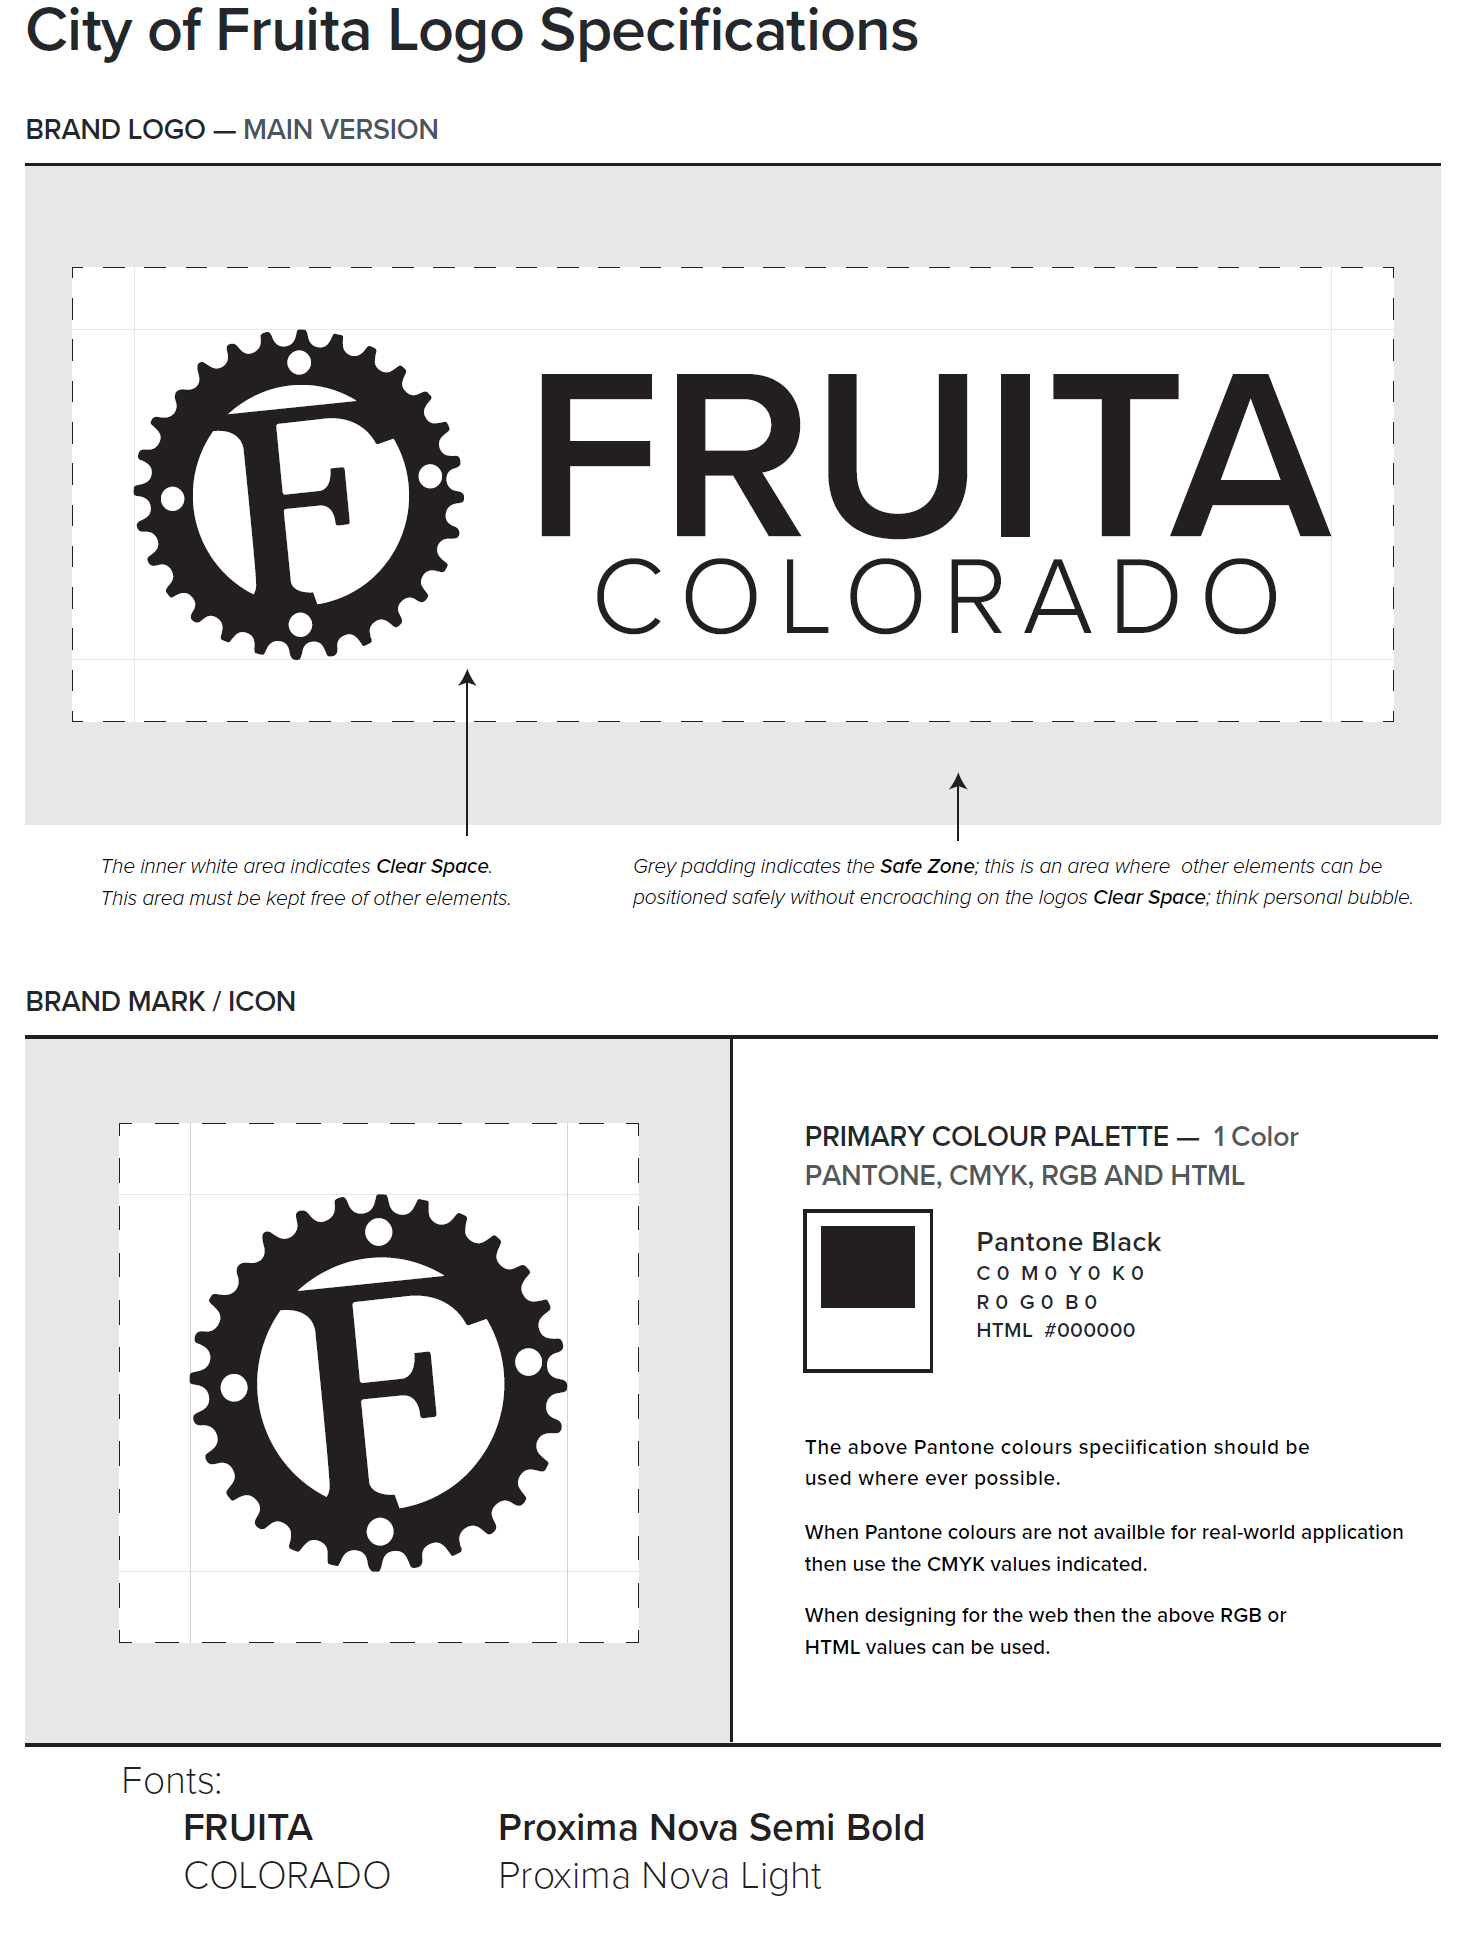 Fruita colorado trademark license agreement city of fruita colorado city of fruita logo specifications 786 kb platinumwayz